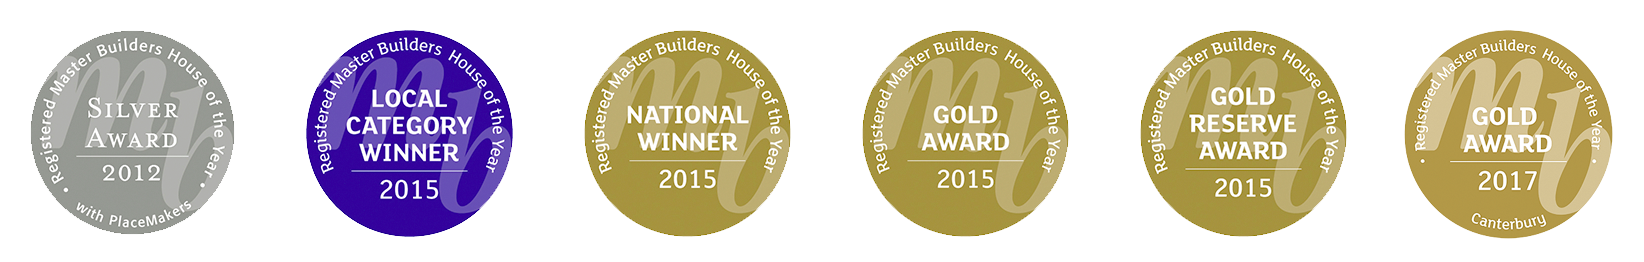 Our team have won multiple Master Builders awards